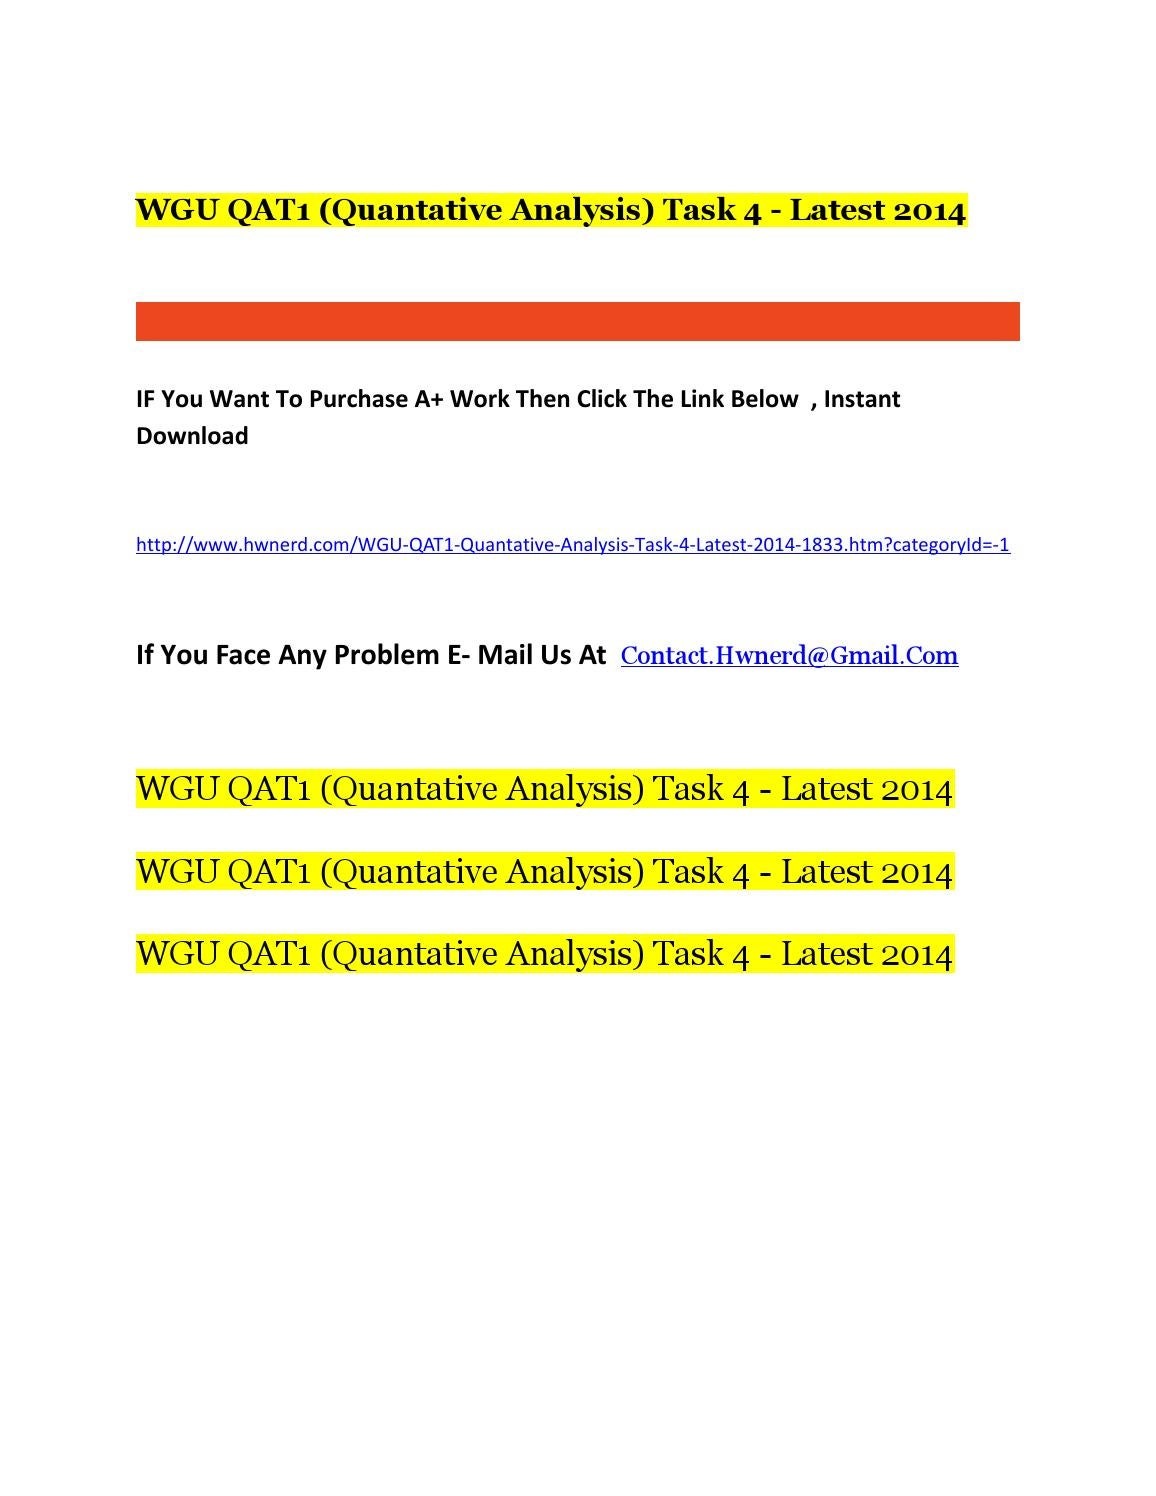 wgu egt task 4 Wgu aca1 task 4 tutorial solution help if you need the solution/tutorial to this task or any other aca1, bga1 or any other task/assignment/homework help then feel free to contact me at waqar42@gmailcom.